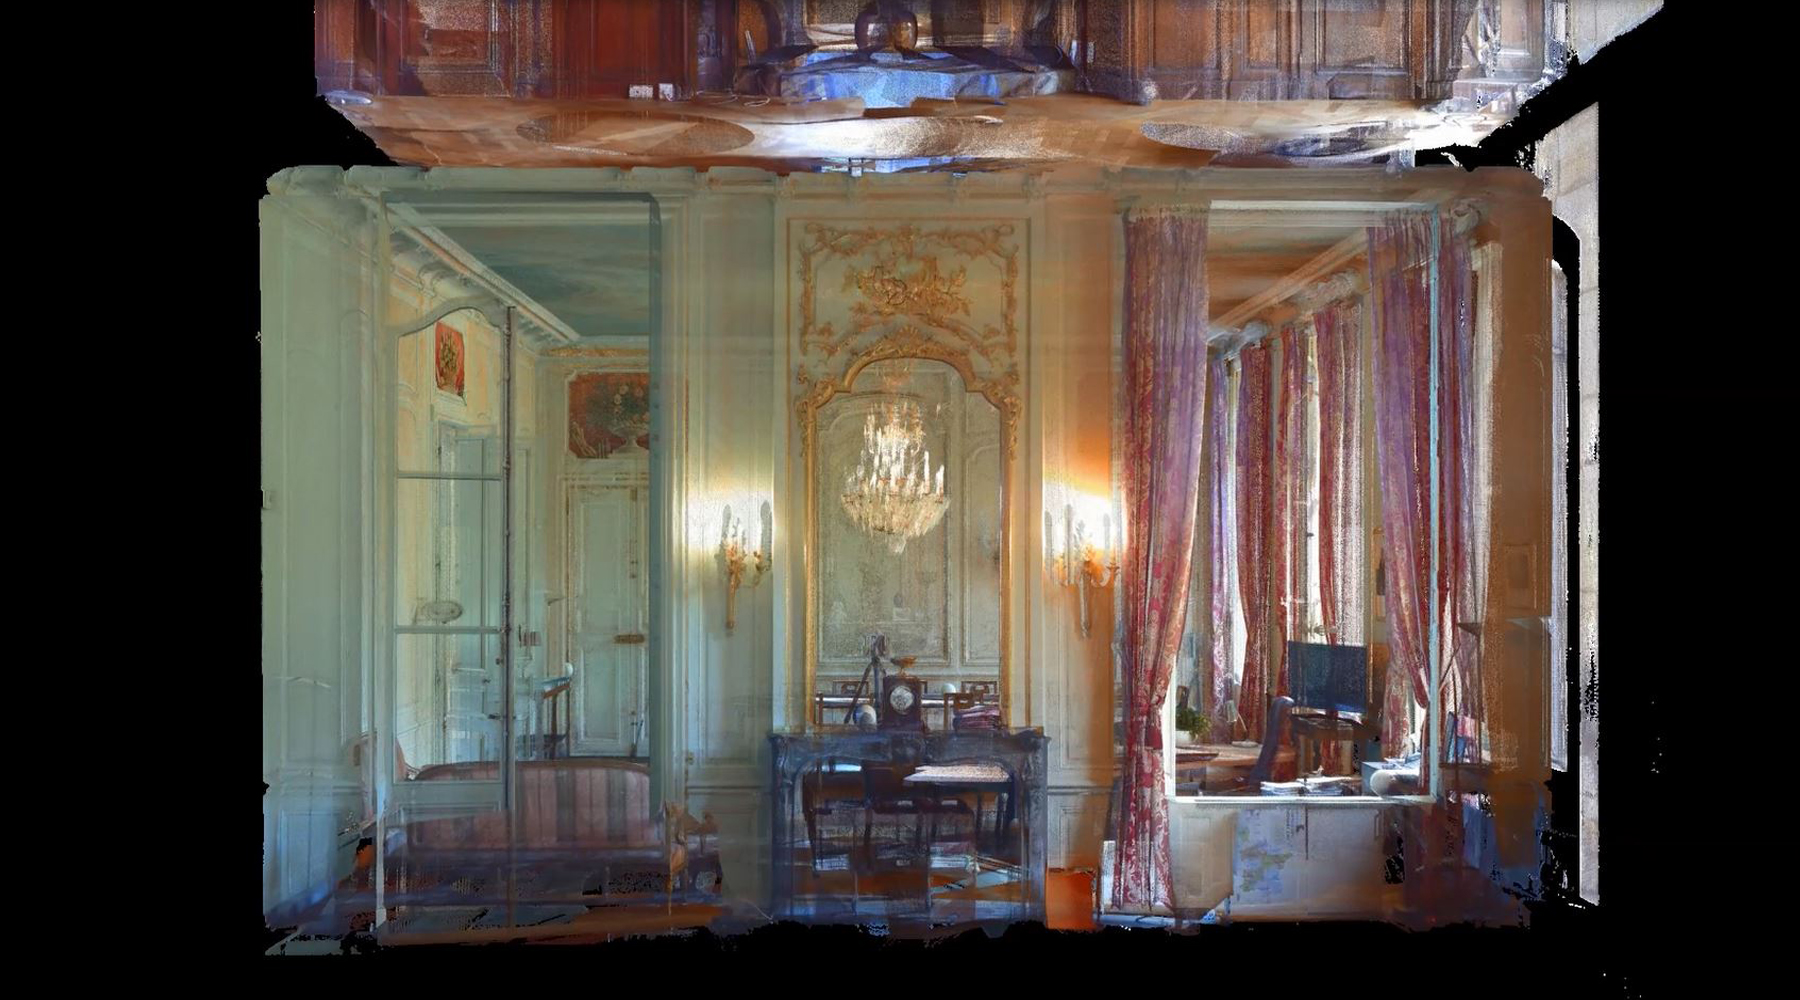 07 Mansion, Paris - Point cloud